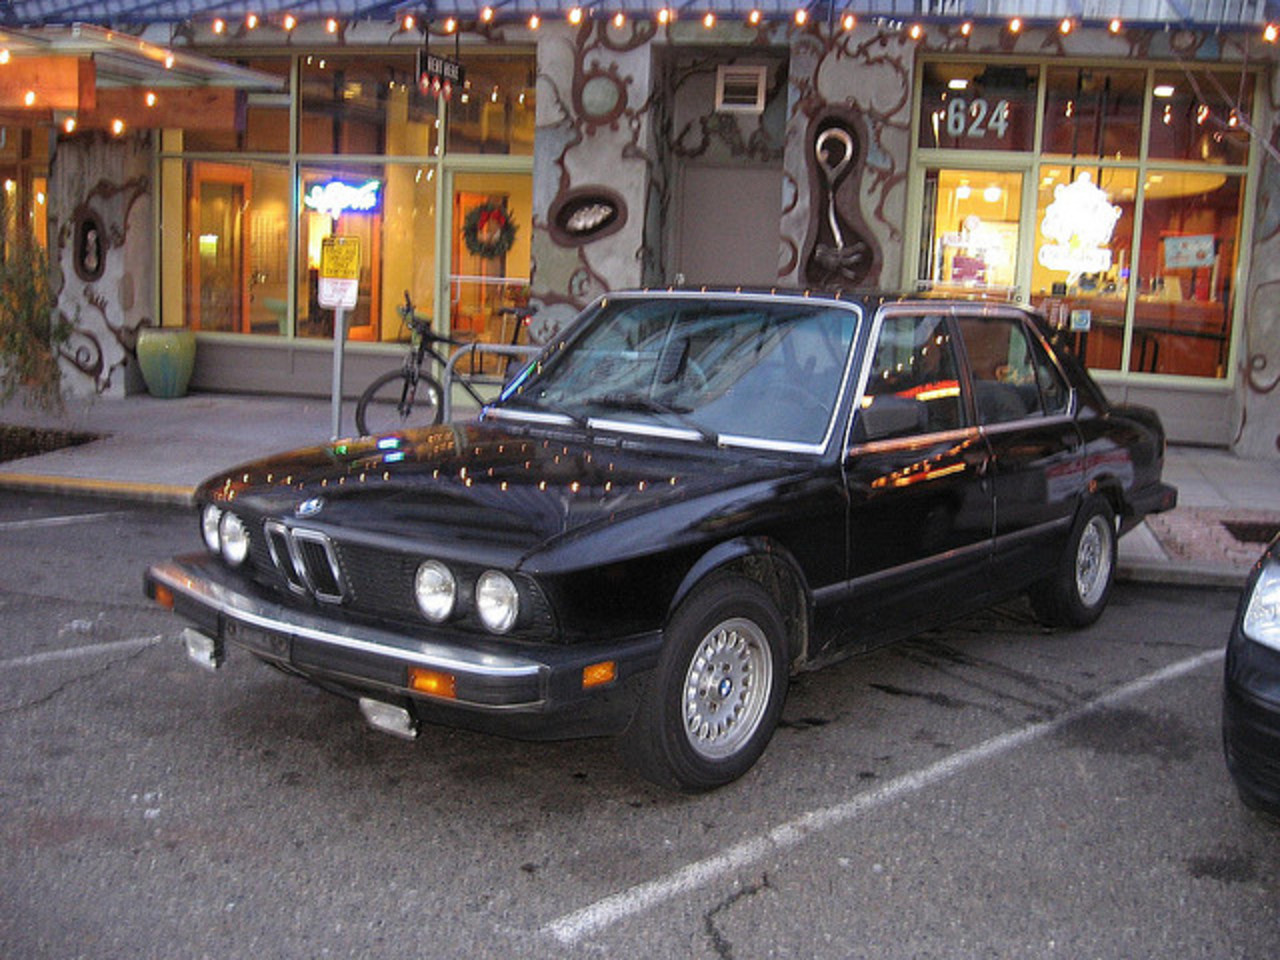 1988 BMW 528e | Flickr - Photo Sharing!